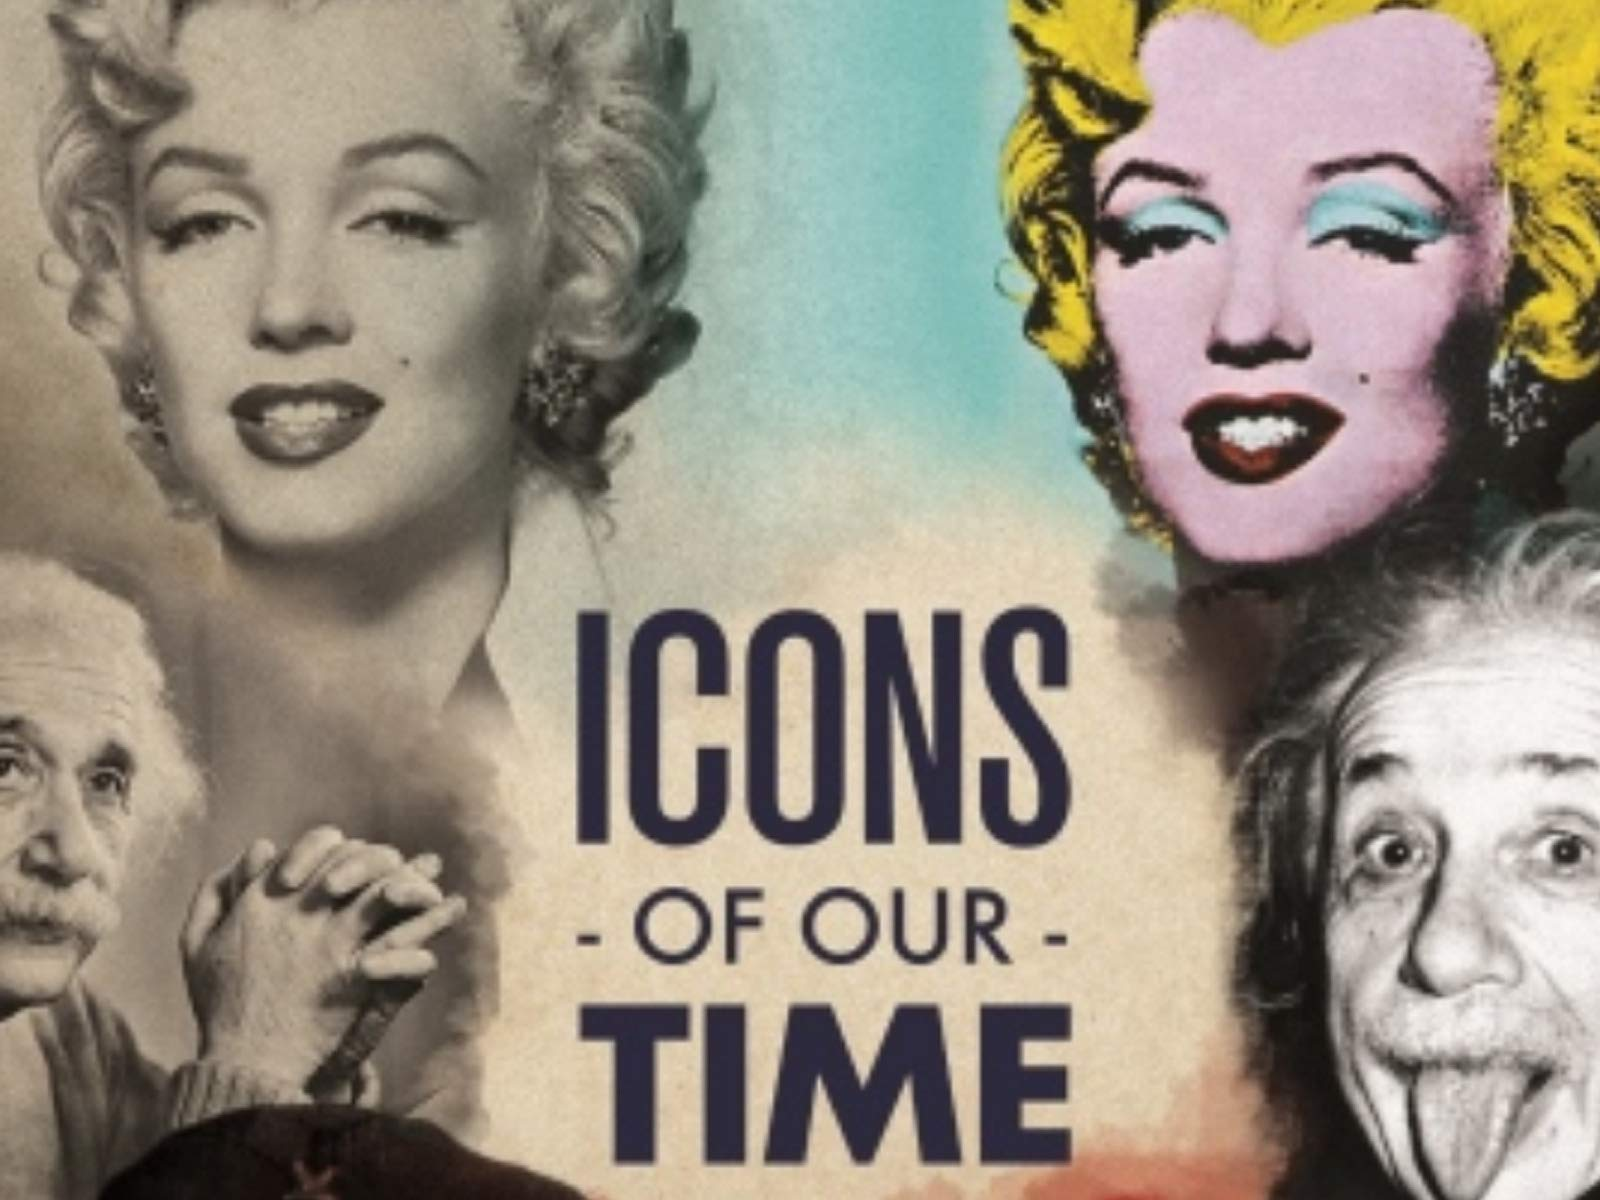 Icons of our time - Season 1